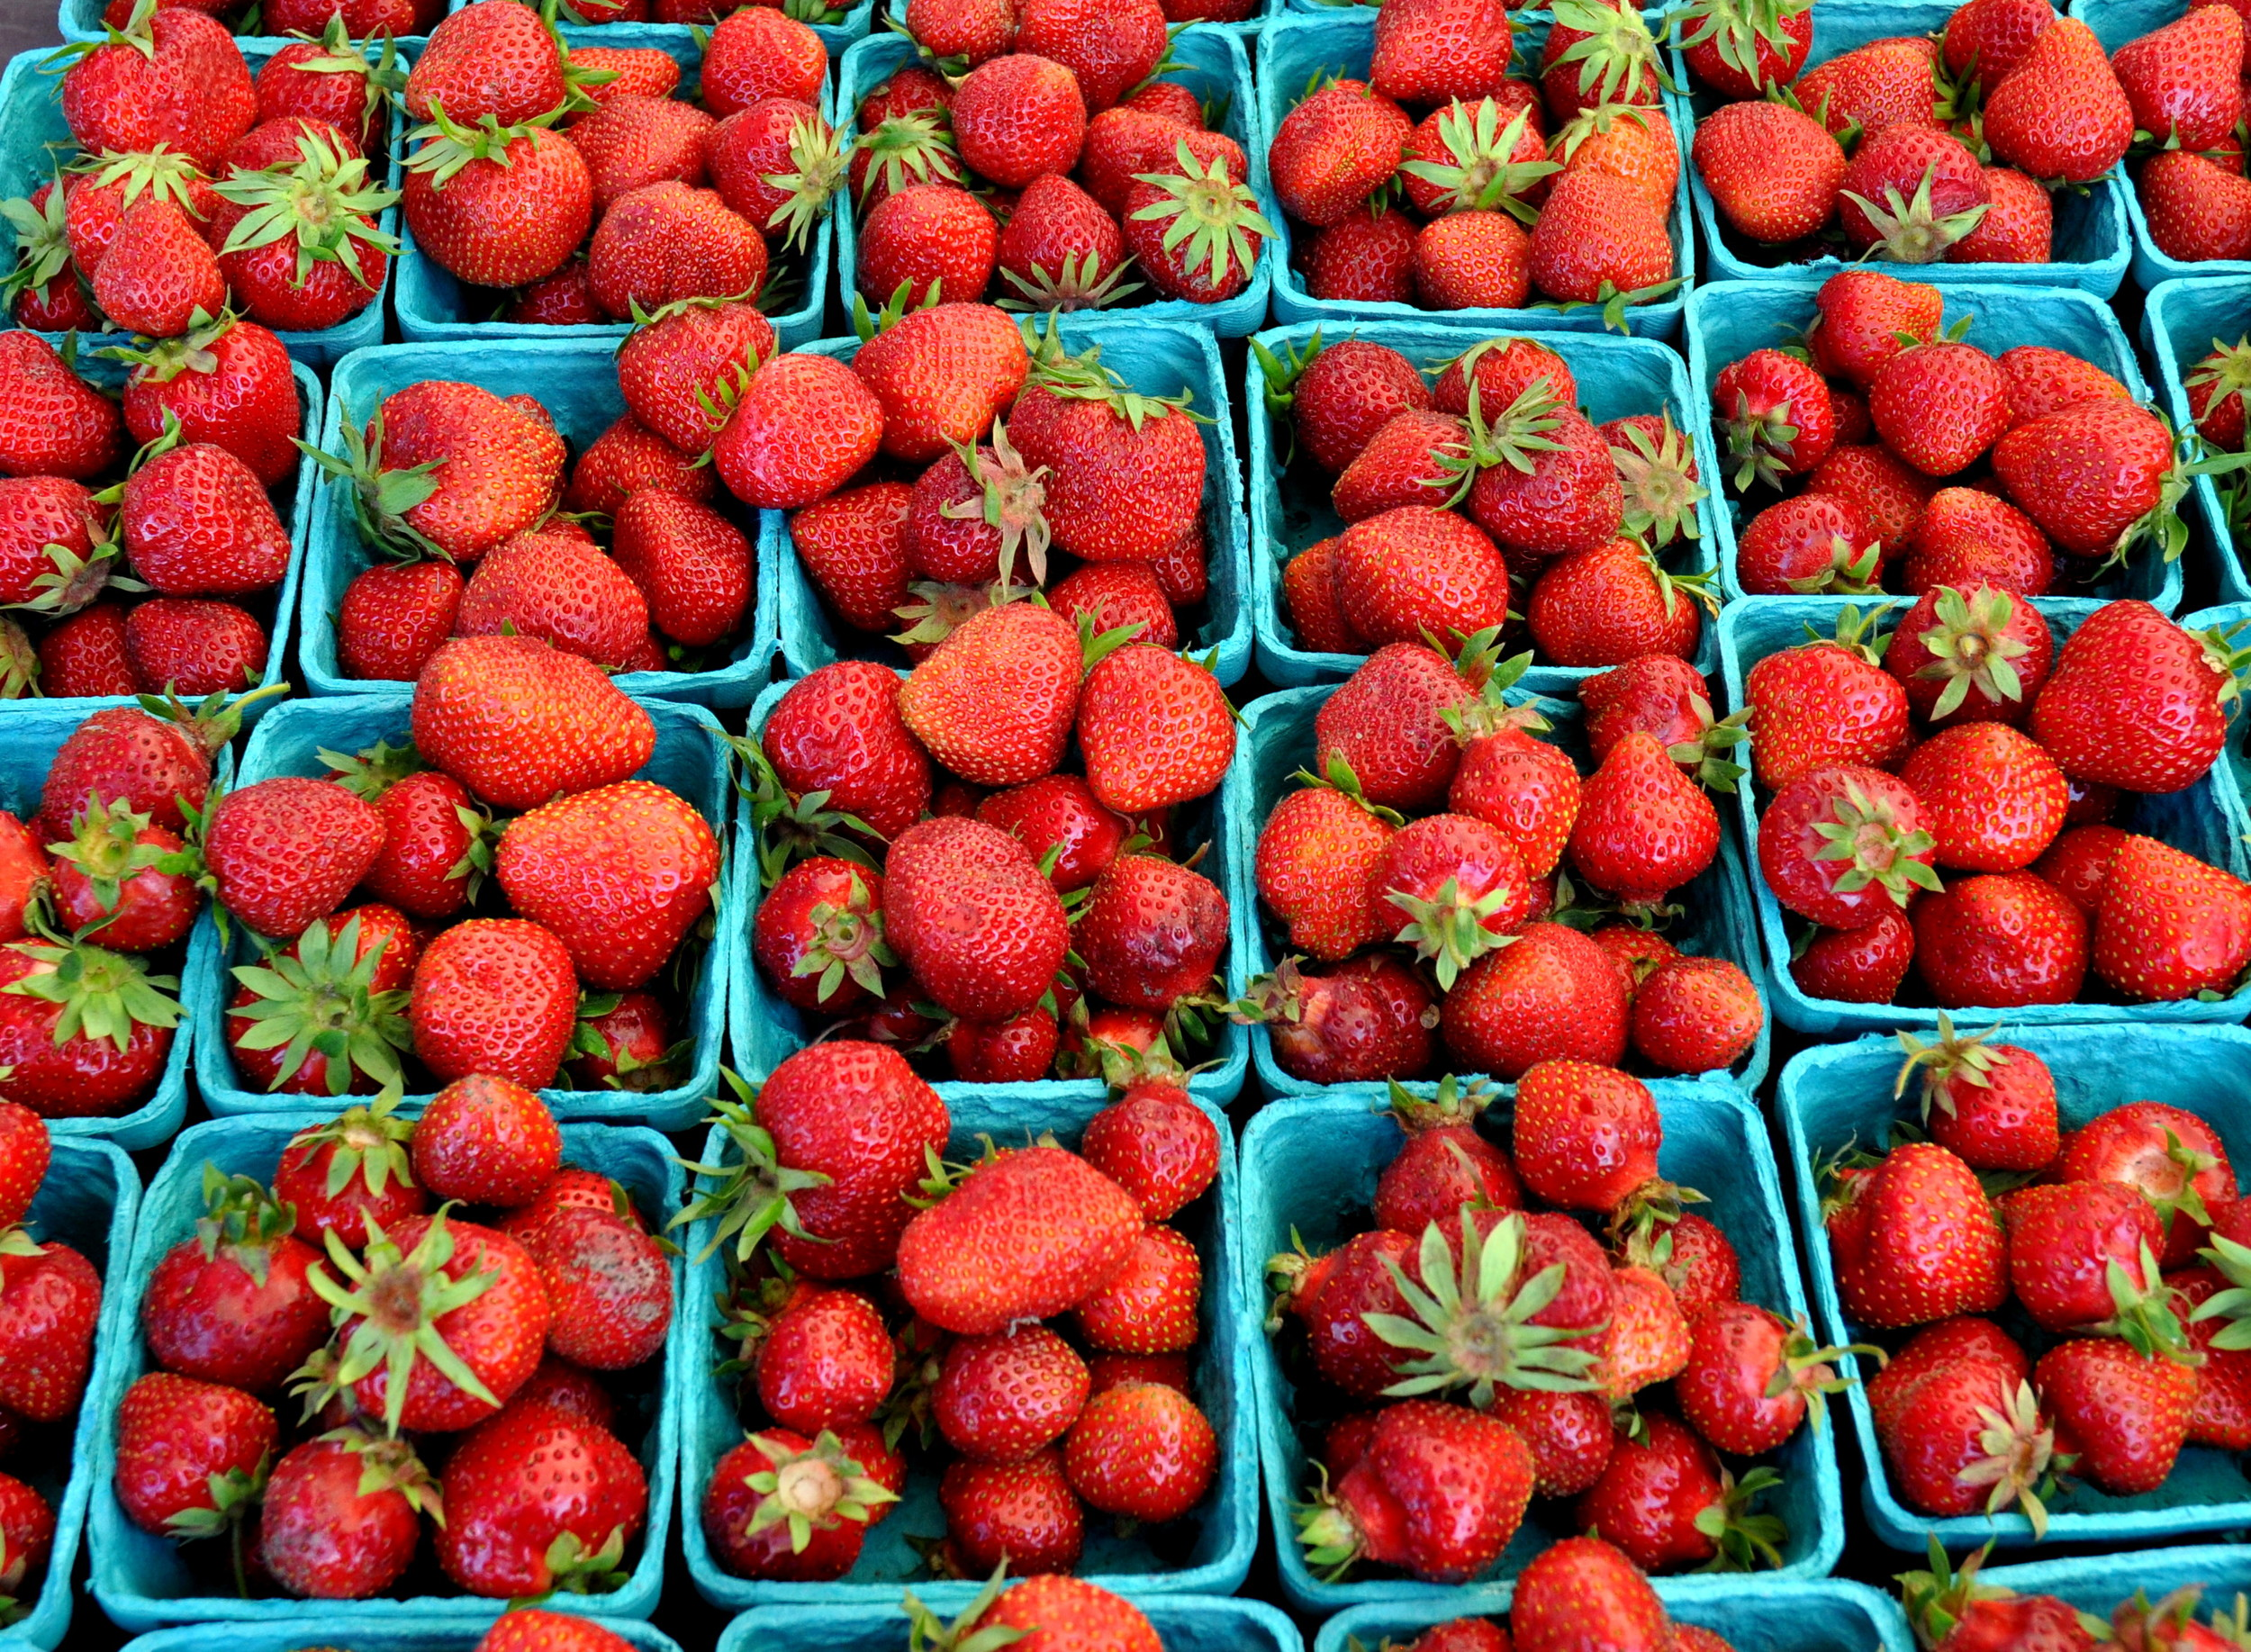 Organic strawberries from Alm Hill Gardens. Photo copyright 2014 by Zachary D. Lyons.